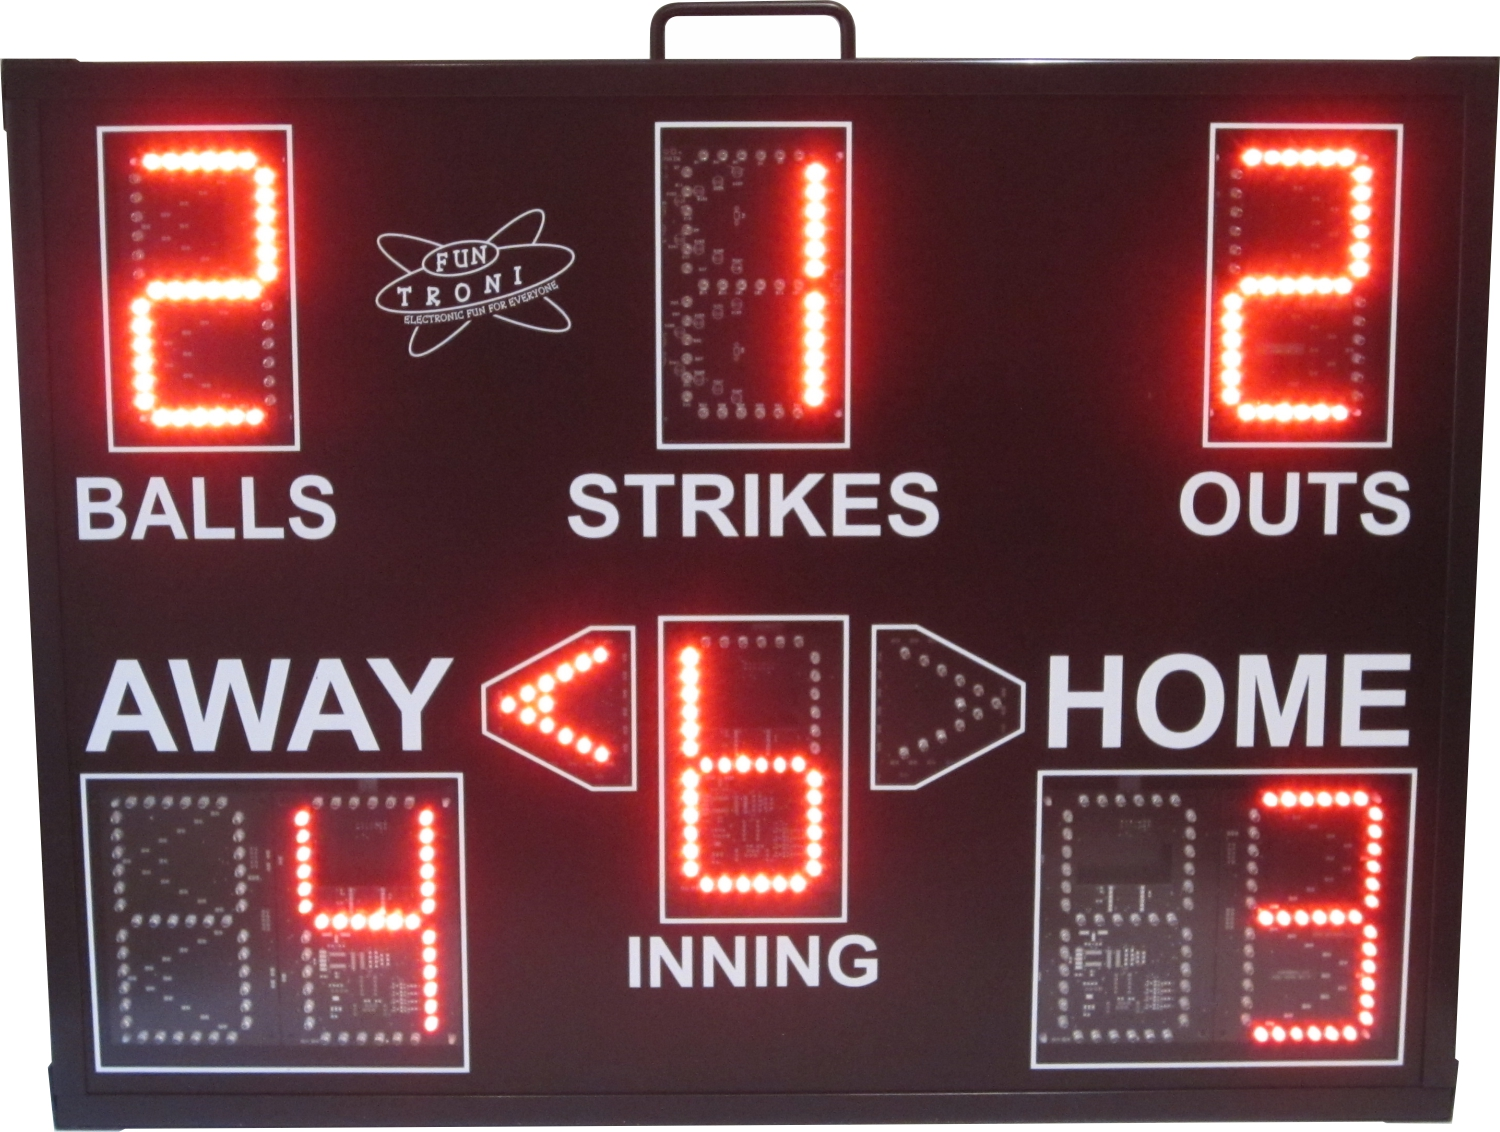 SNT-440BB Portable Baseball Scoreboard